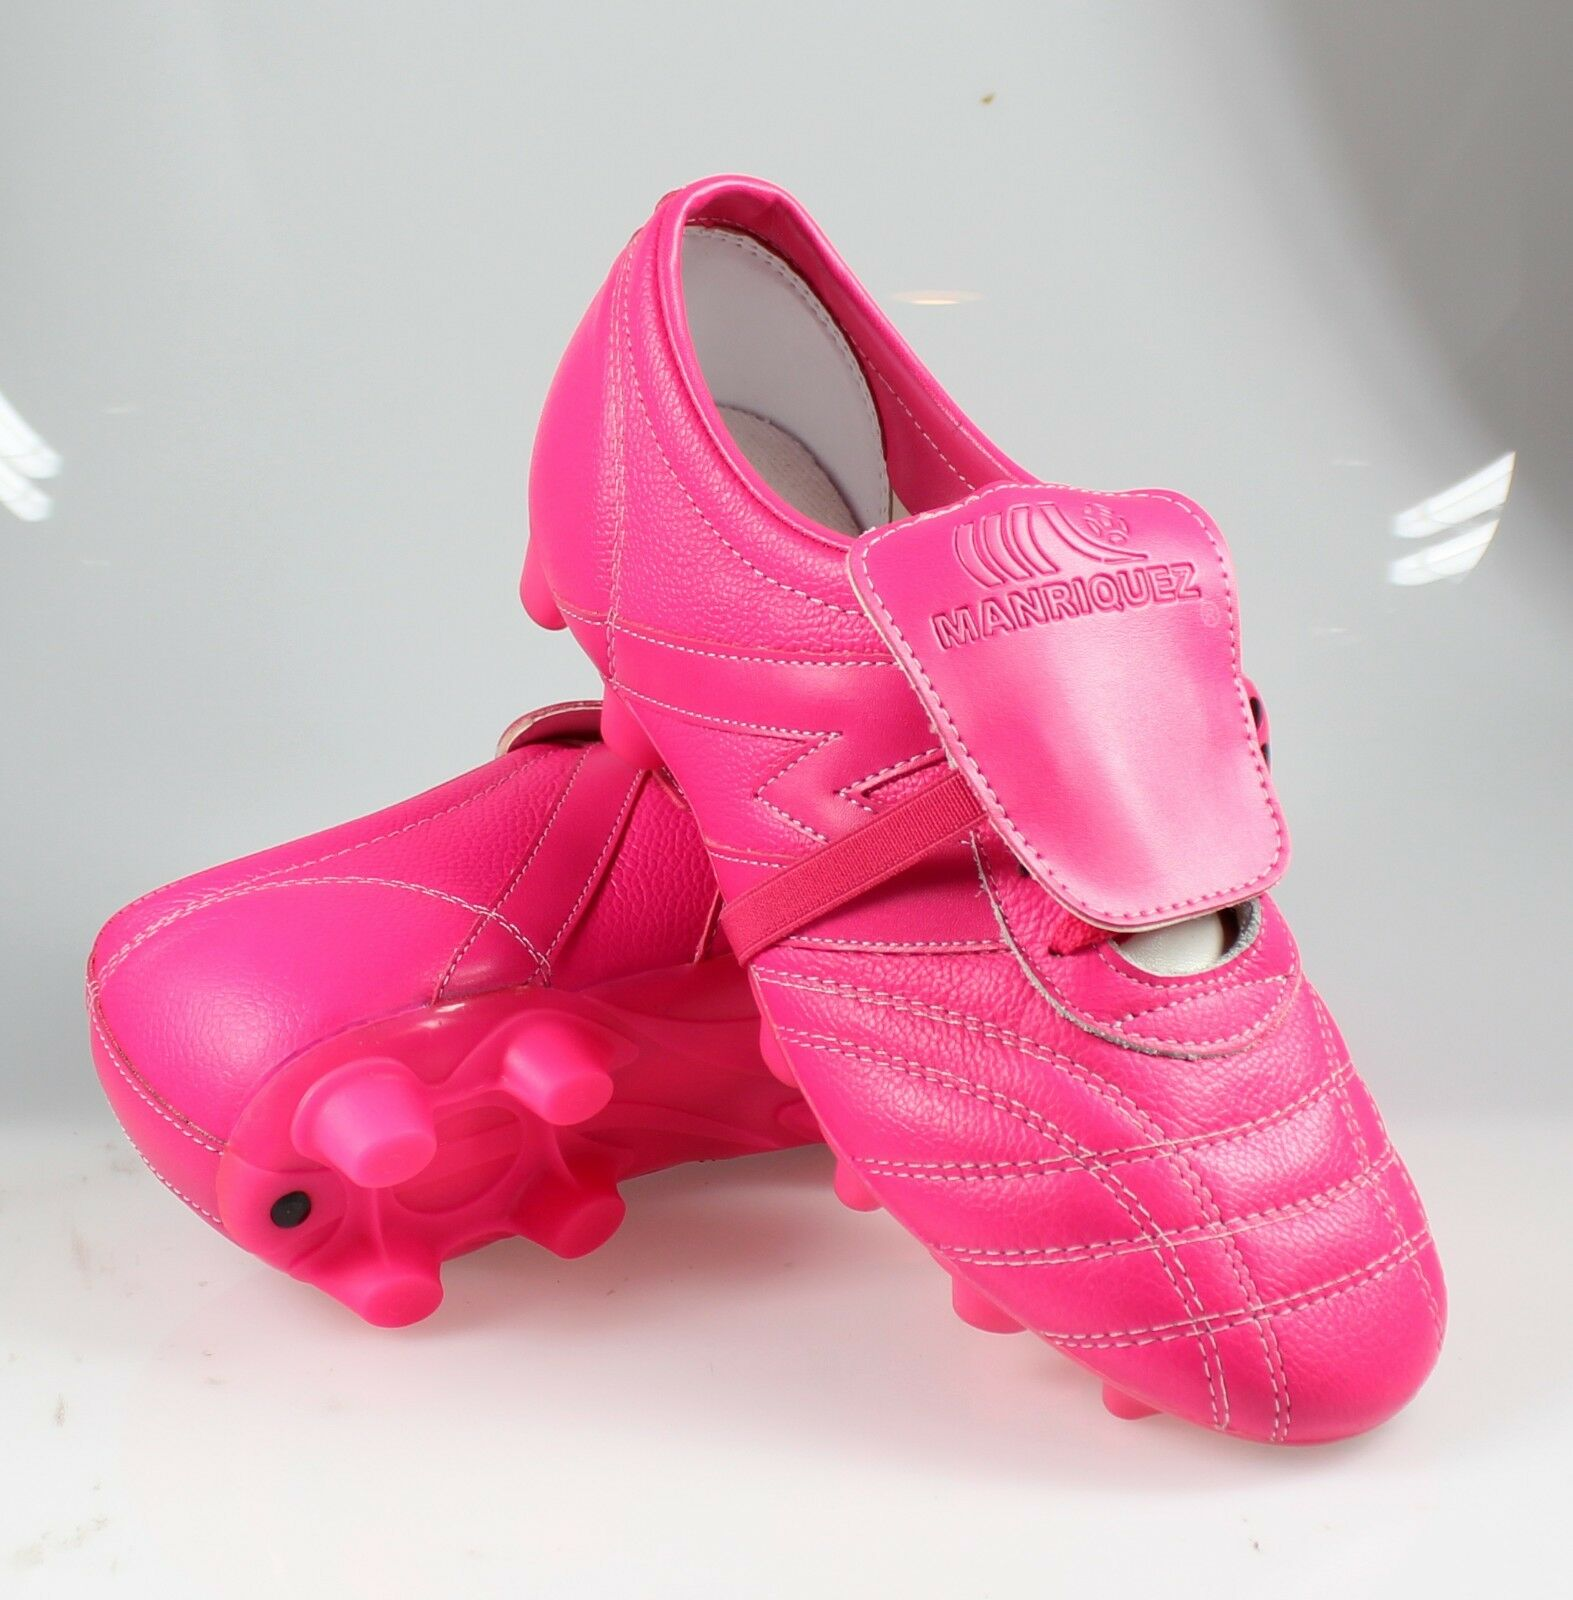 Soccer Cleats Manriquez Authentic Leather Made in Mexico